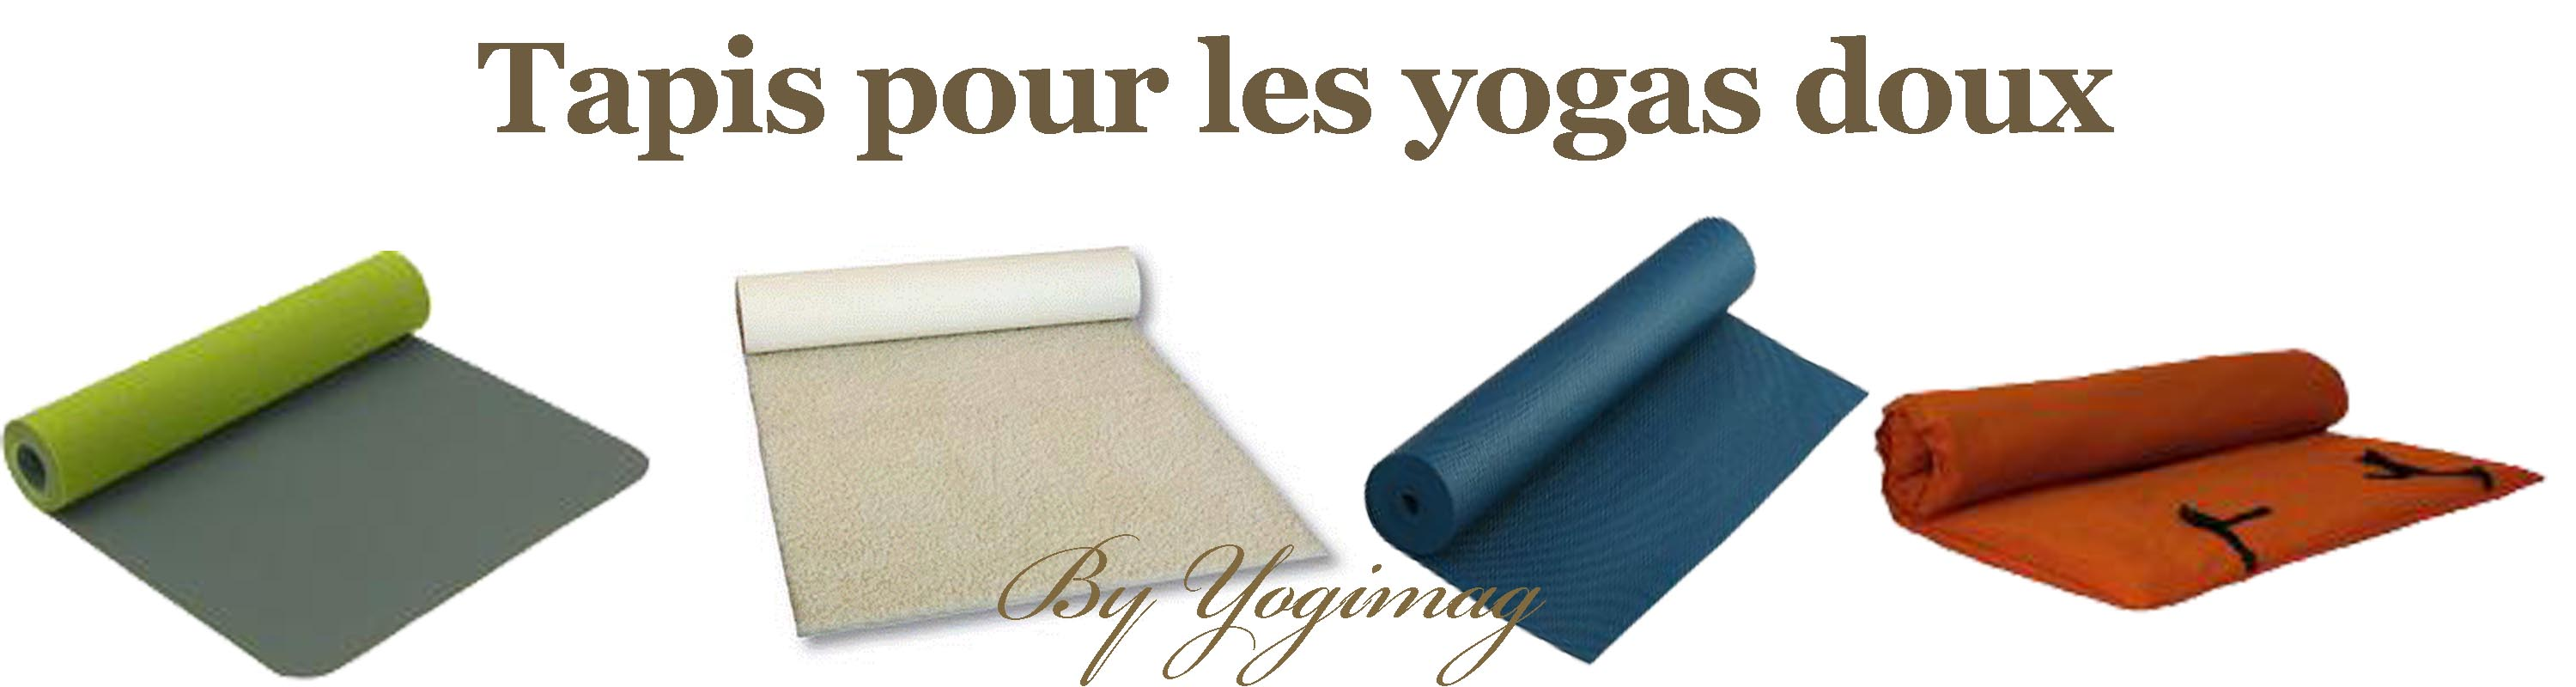 quel tapis de yoga choisir bien acheter conseils yogimag. Black Bedroom Furniture Sets. Home Design Ideas